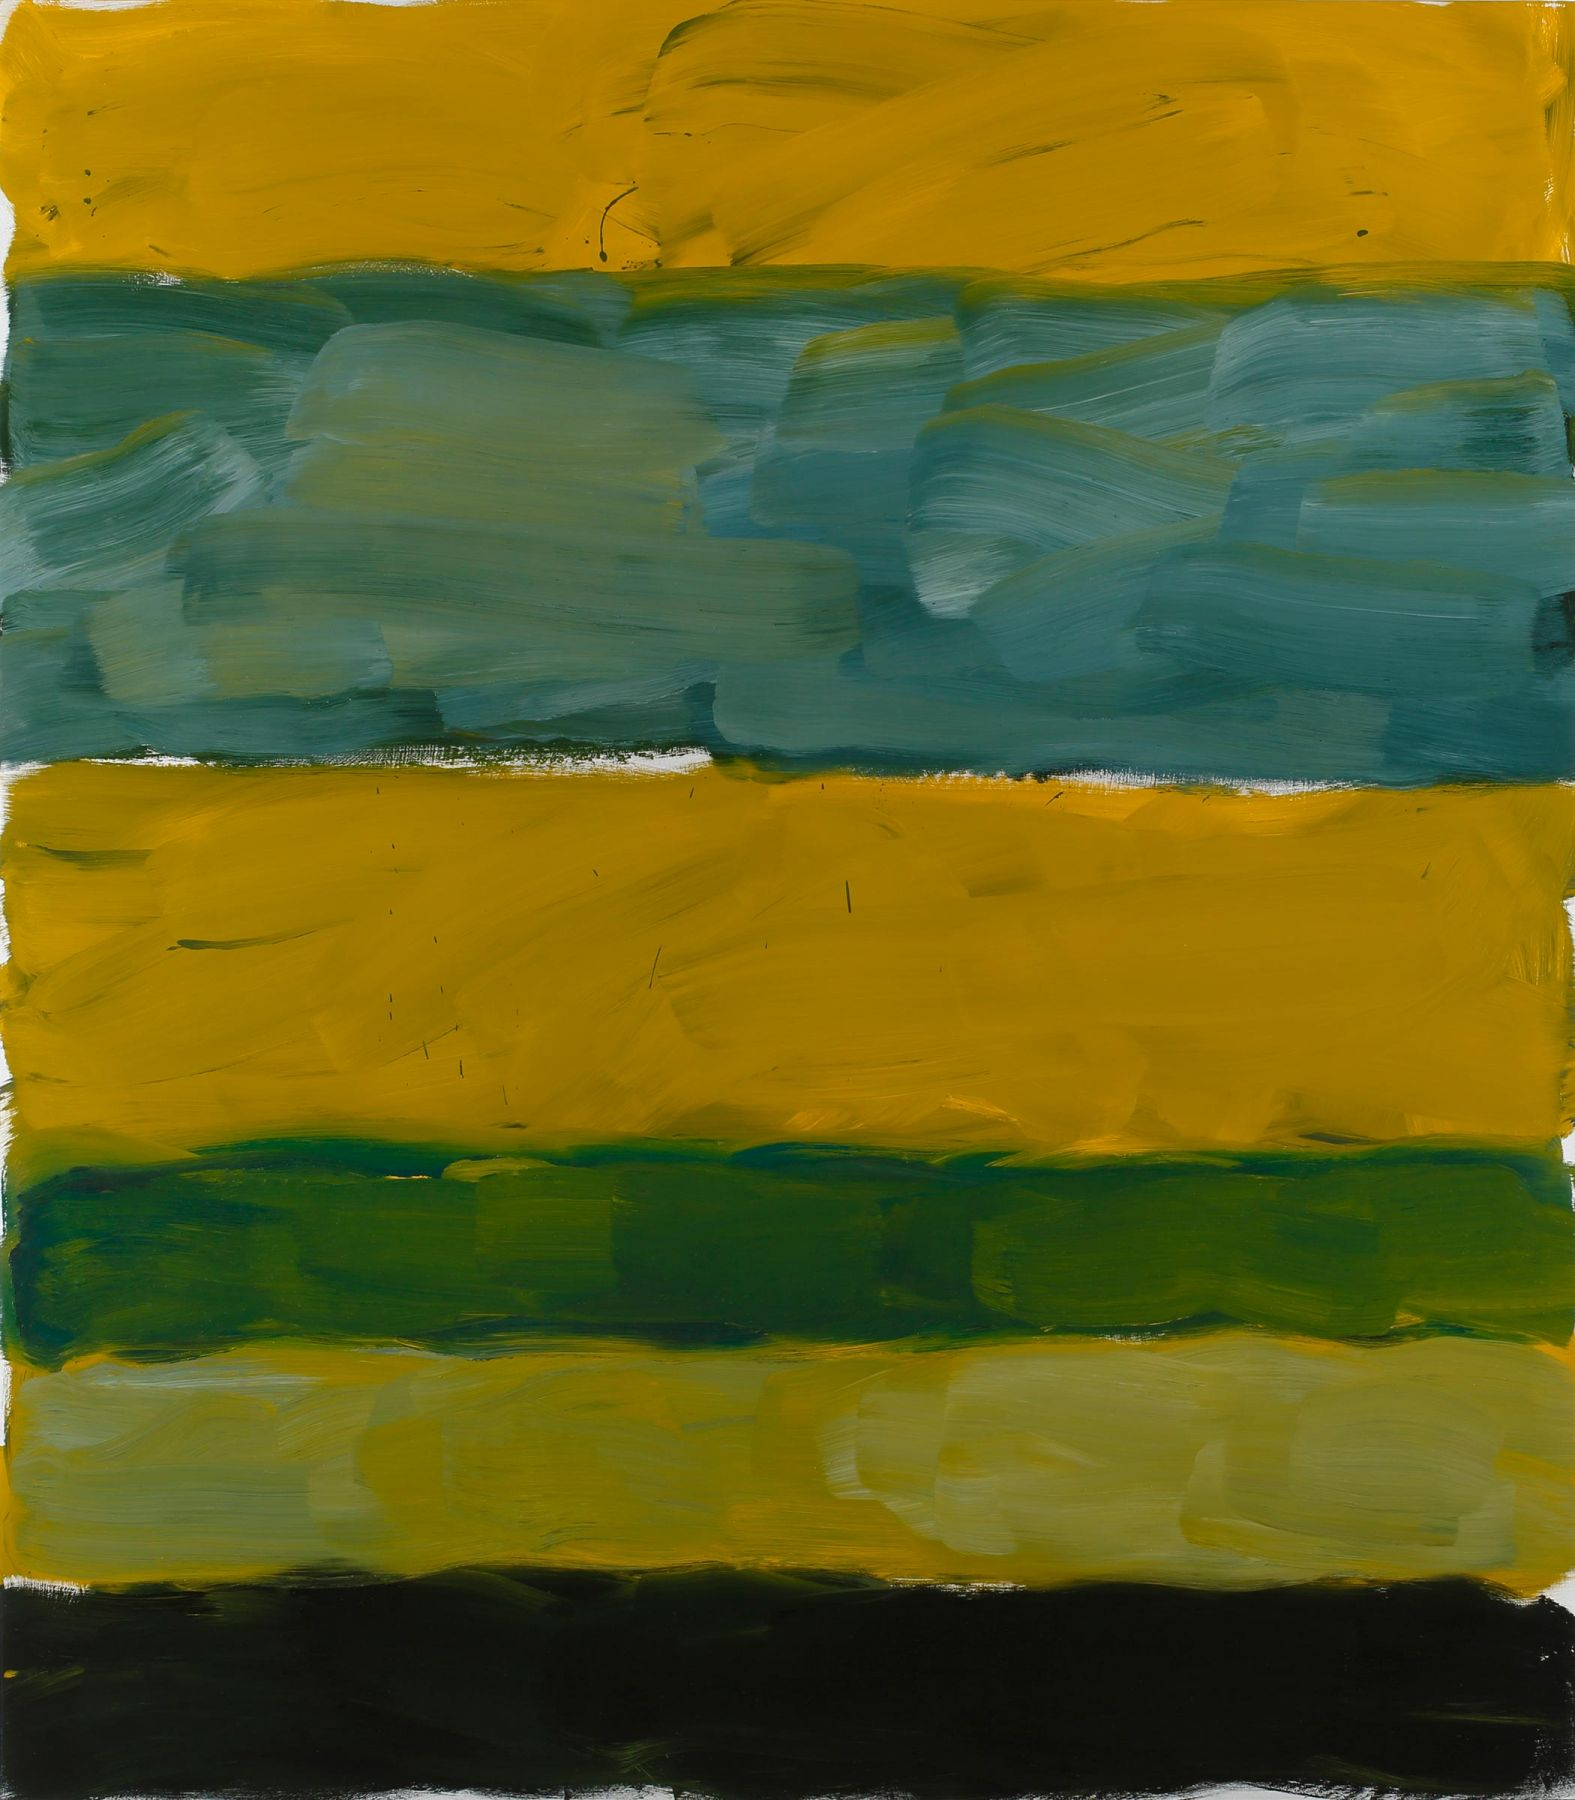 Sean Scully - Detail